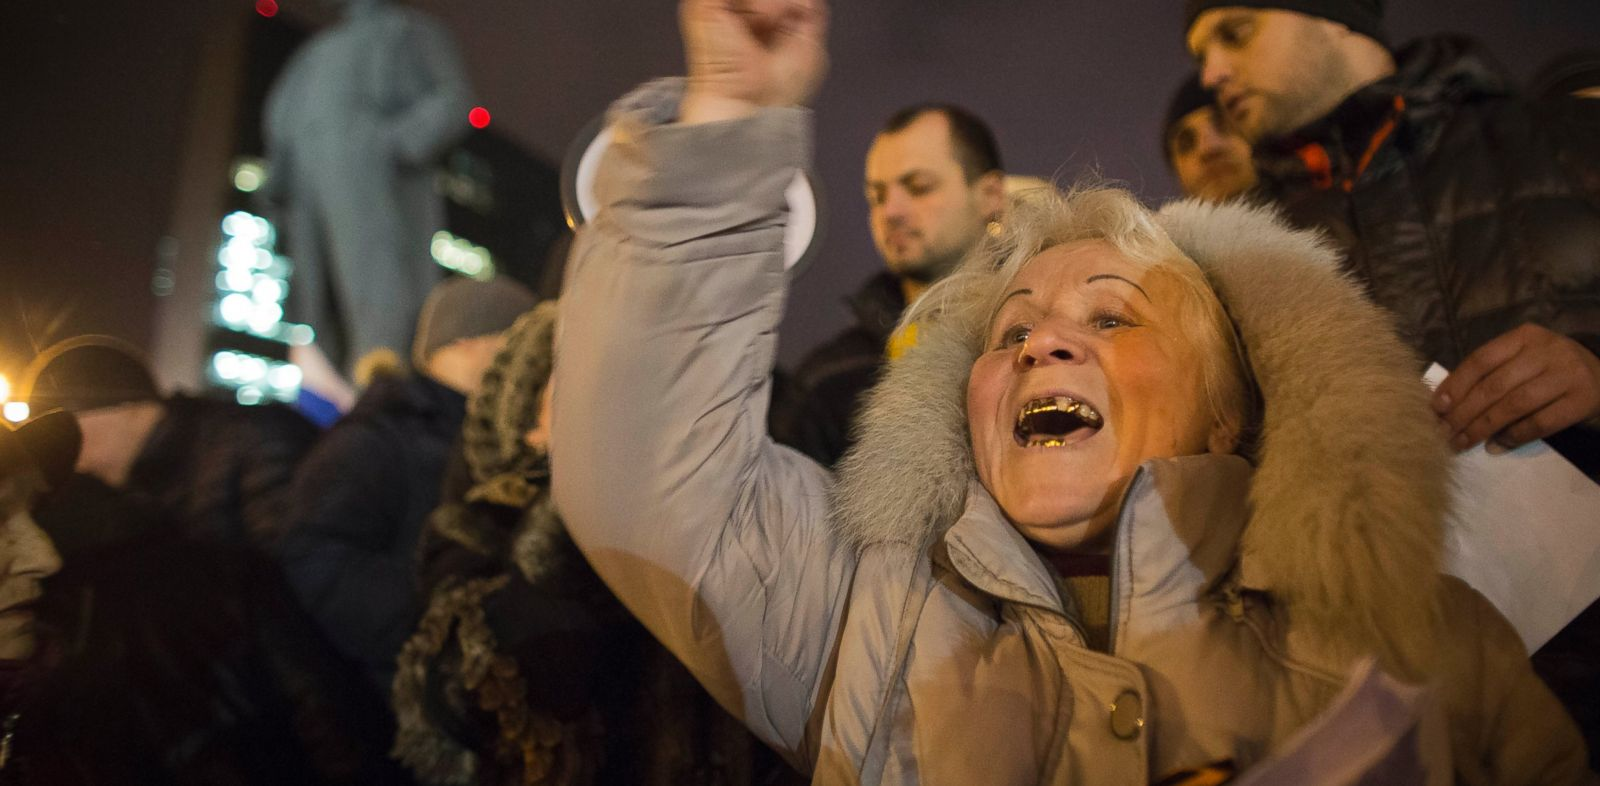 PHOTO: Pro-Russia protesters shout slogans during a small demonstration in Donetsk, eastern Ukraine, Feb. 26, 2014.